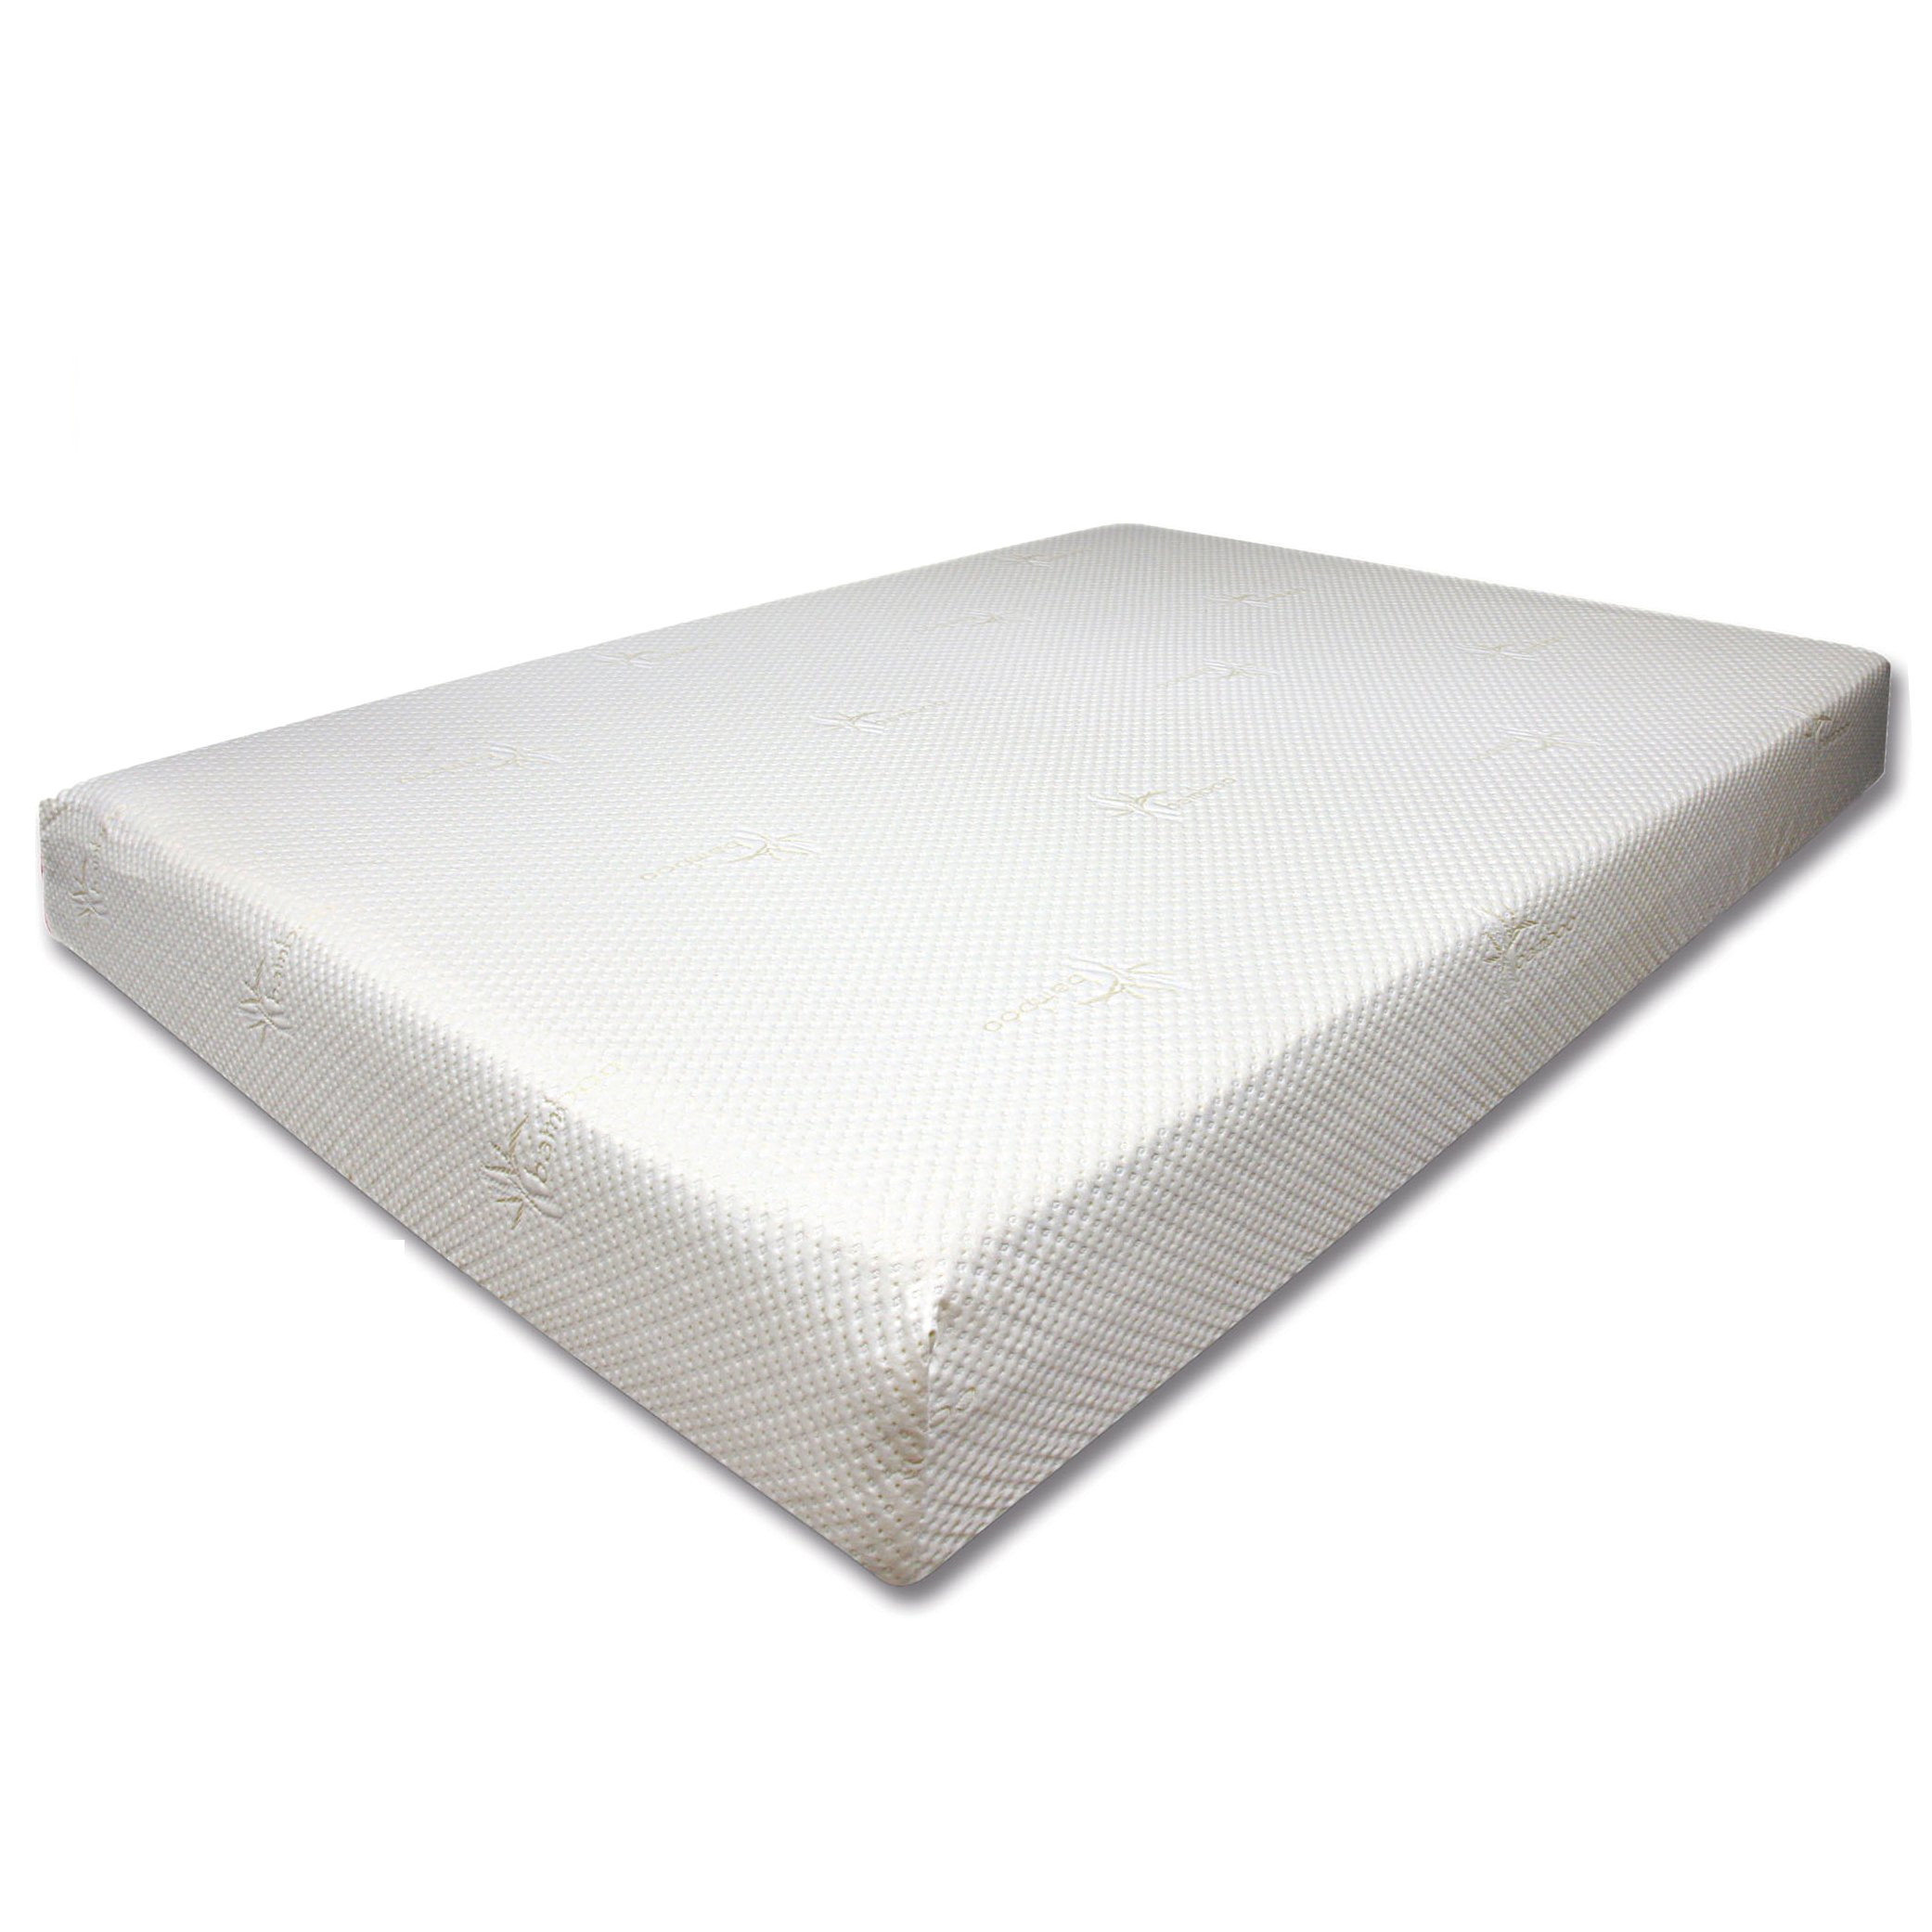 shop dreamax therapeutic high density 10 inch full size memory foam mattress free shipping today overstock com 8859260